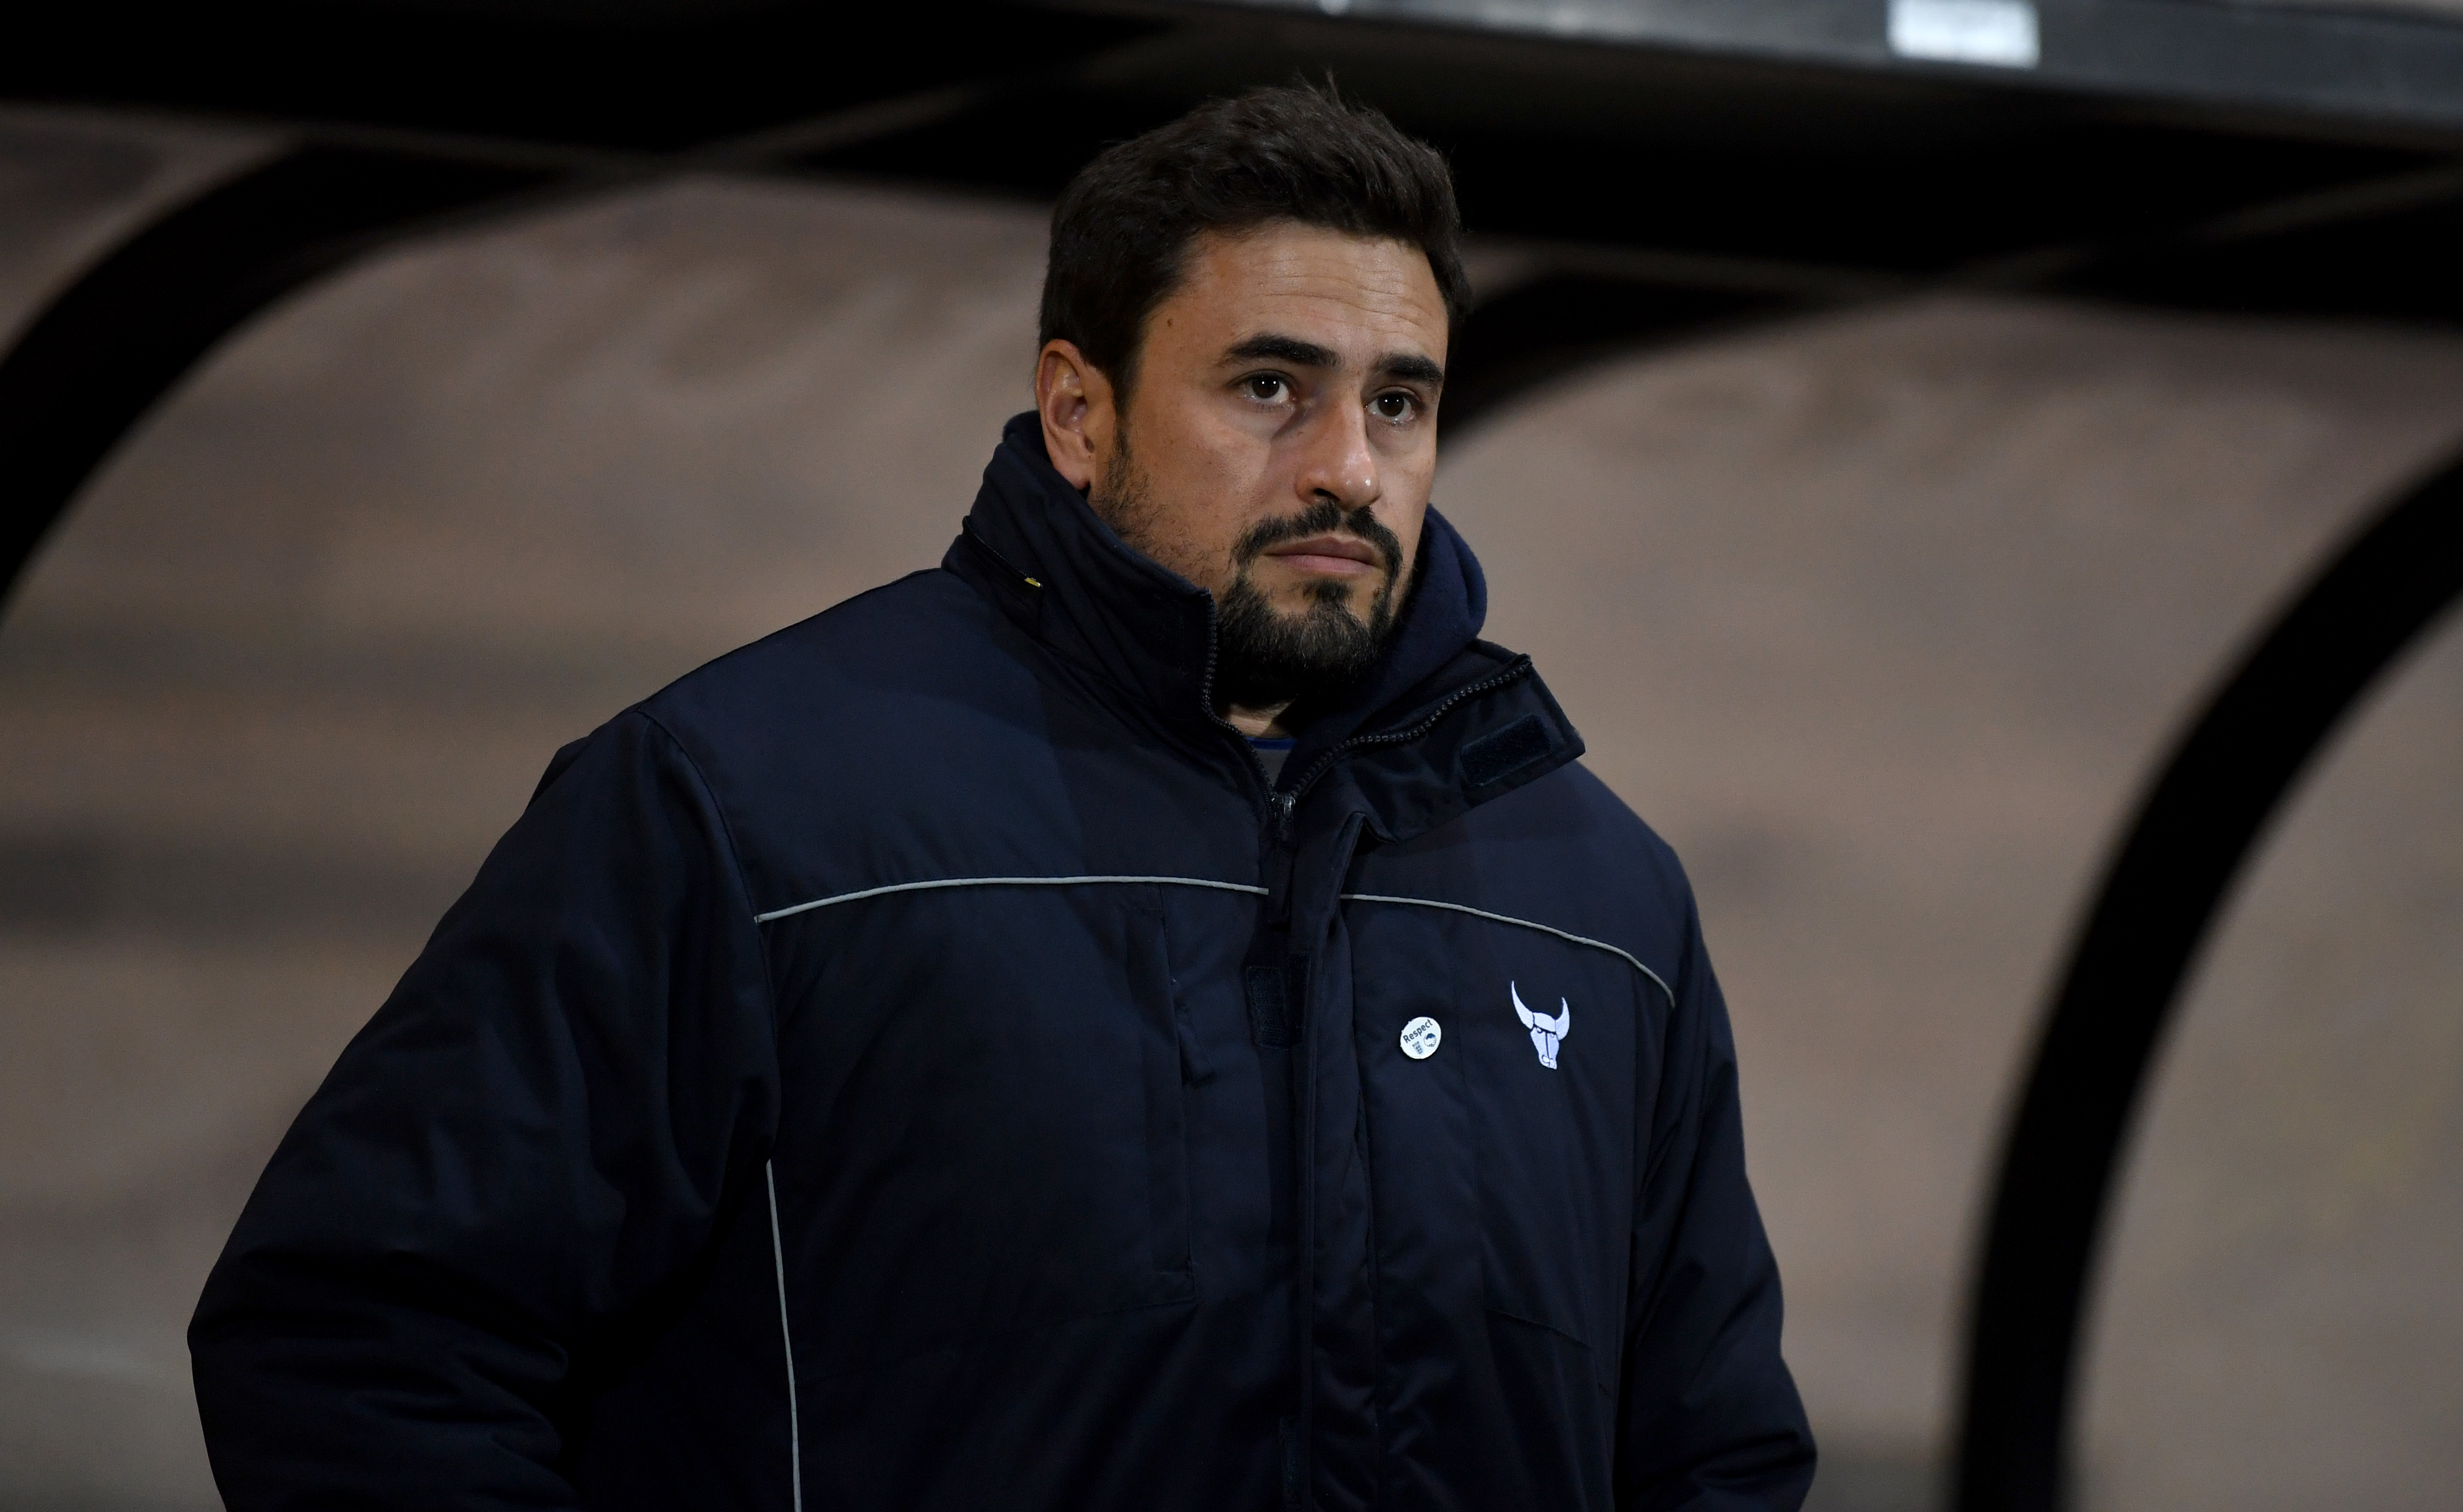 Pep Clotet Oxford League One Yellow Army